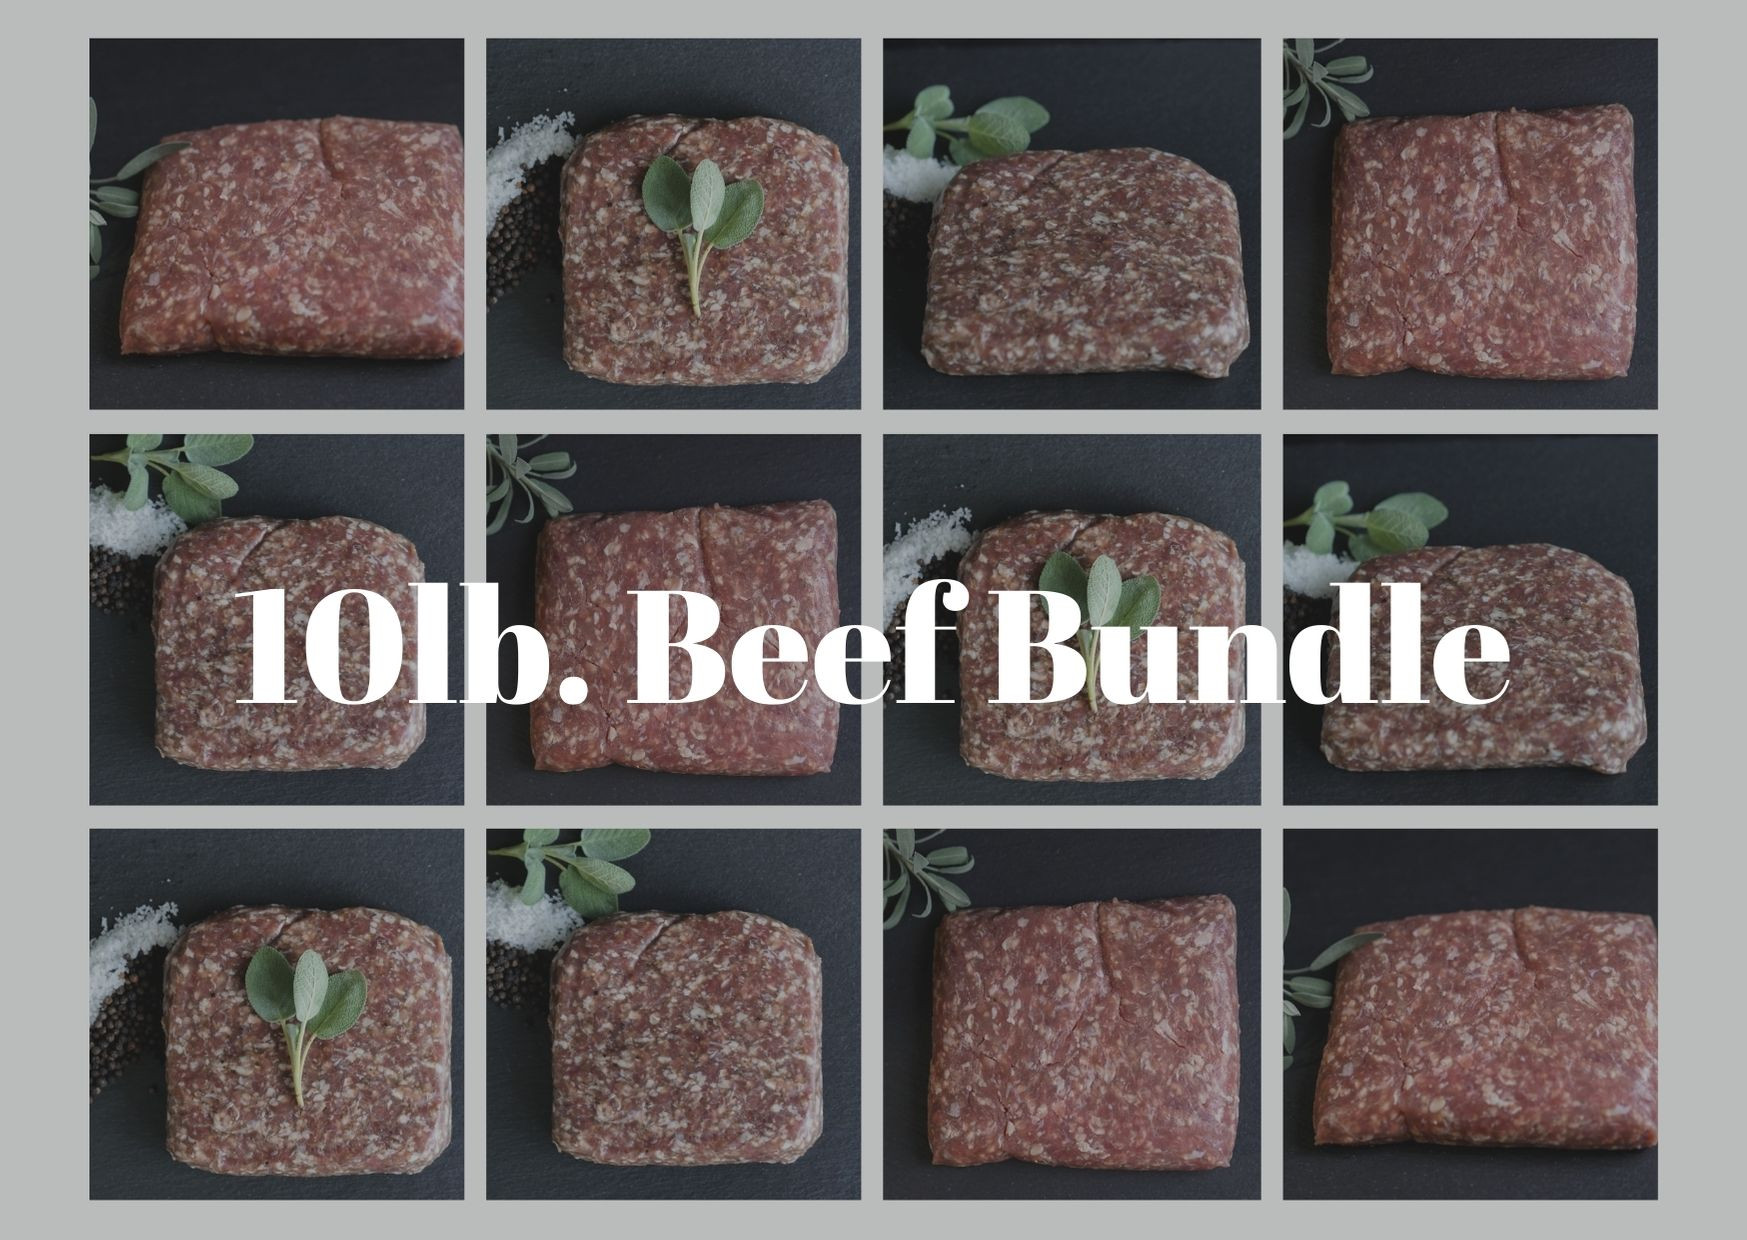 10 lb Ground Beef Bundle